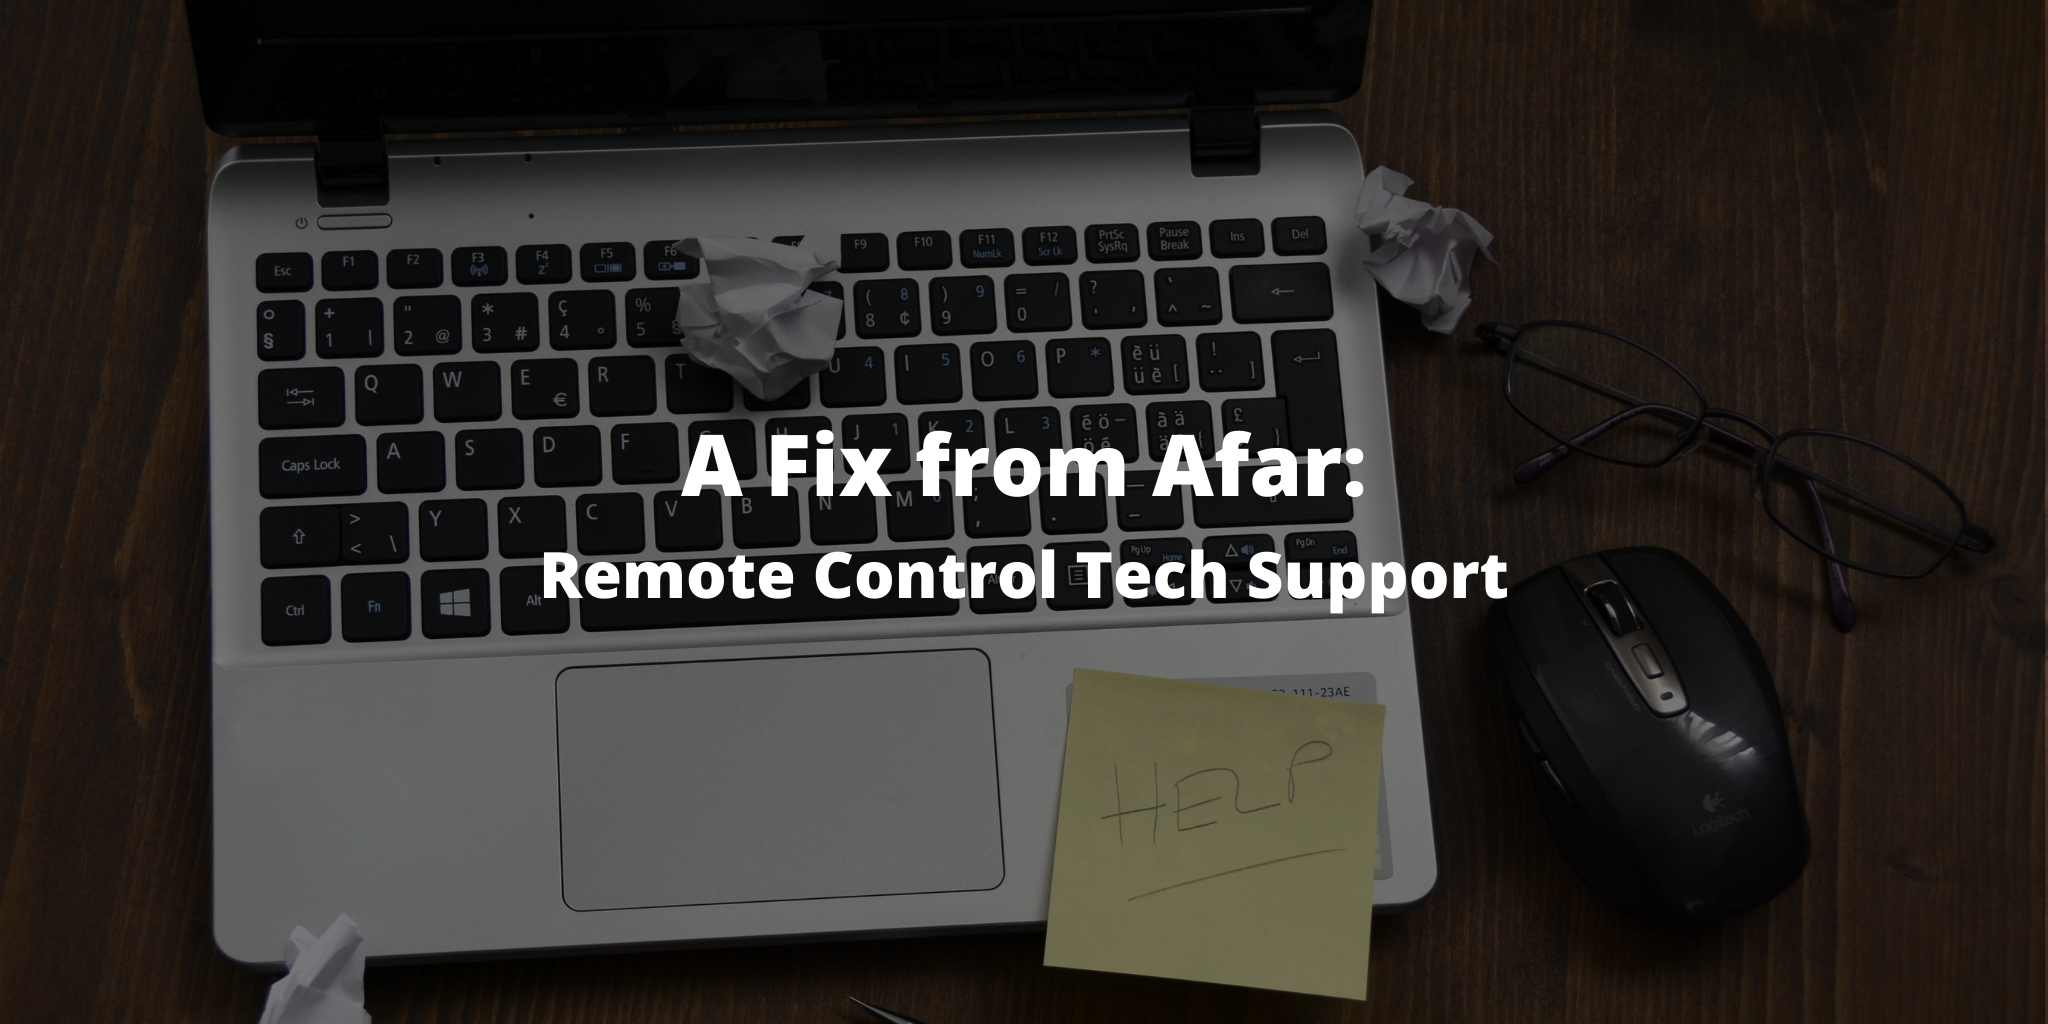 A Fix from Afar: Remote Control Tech Support